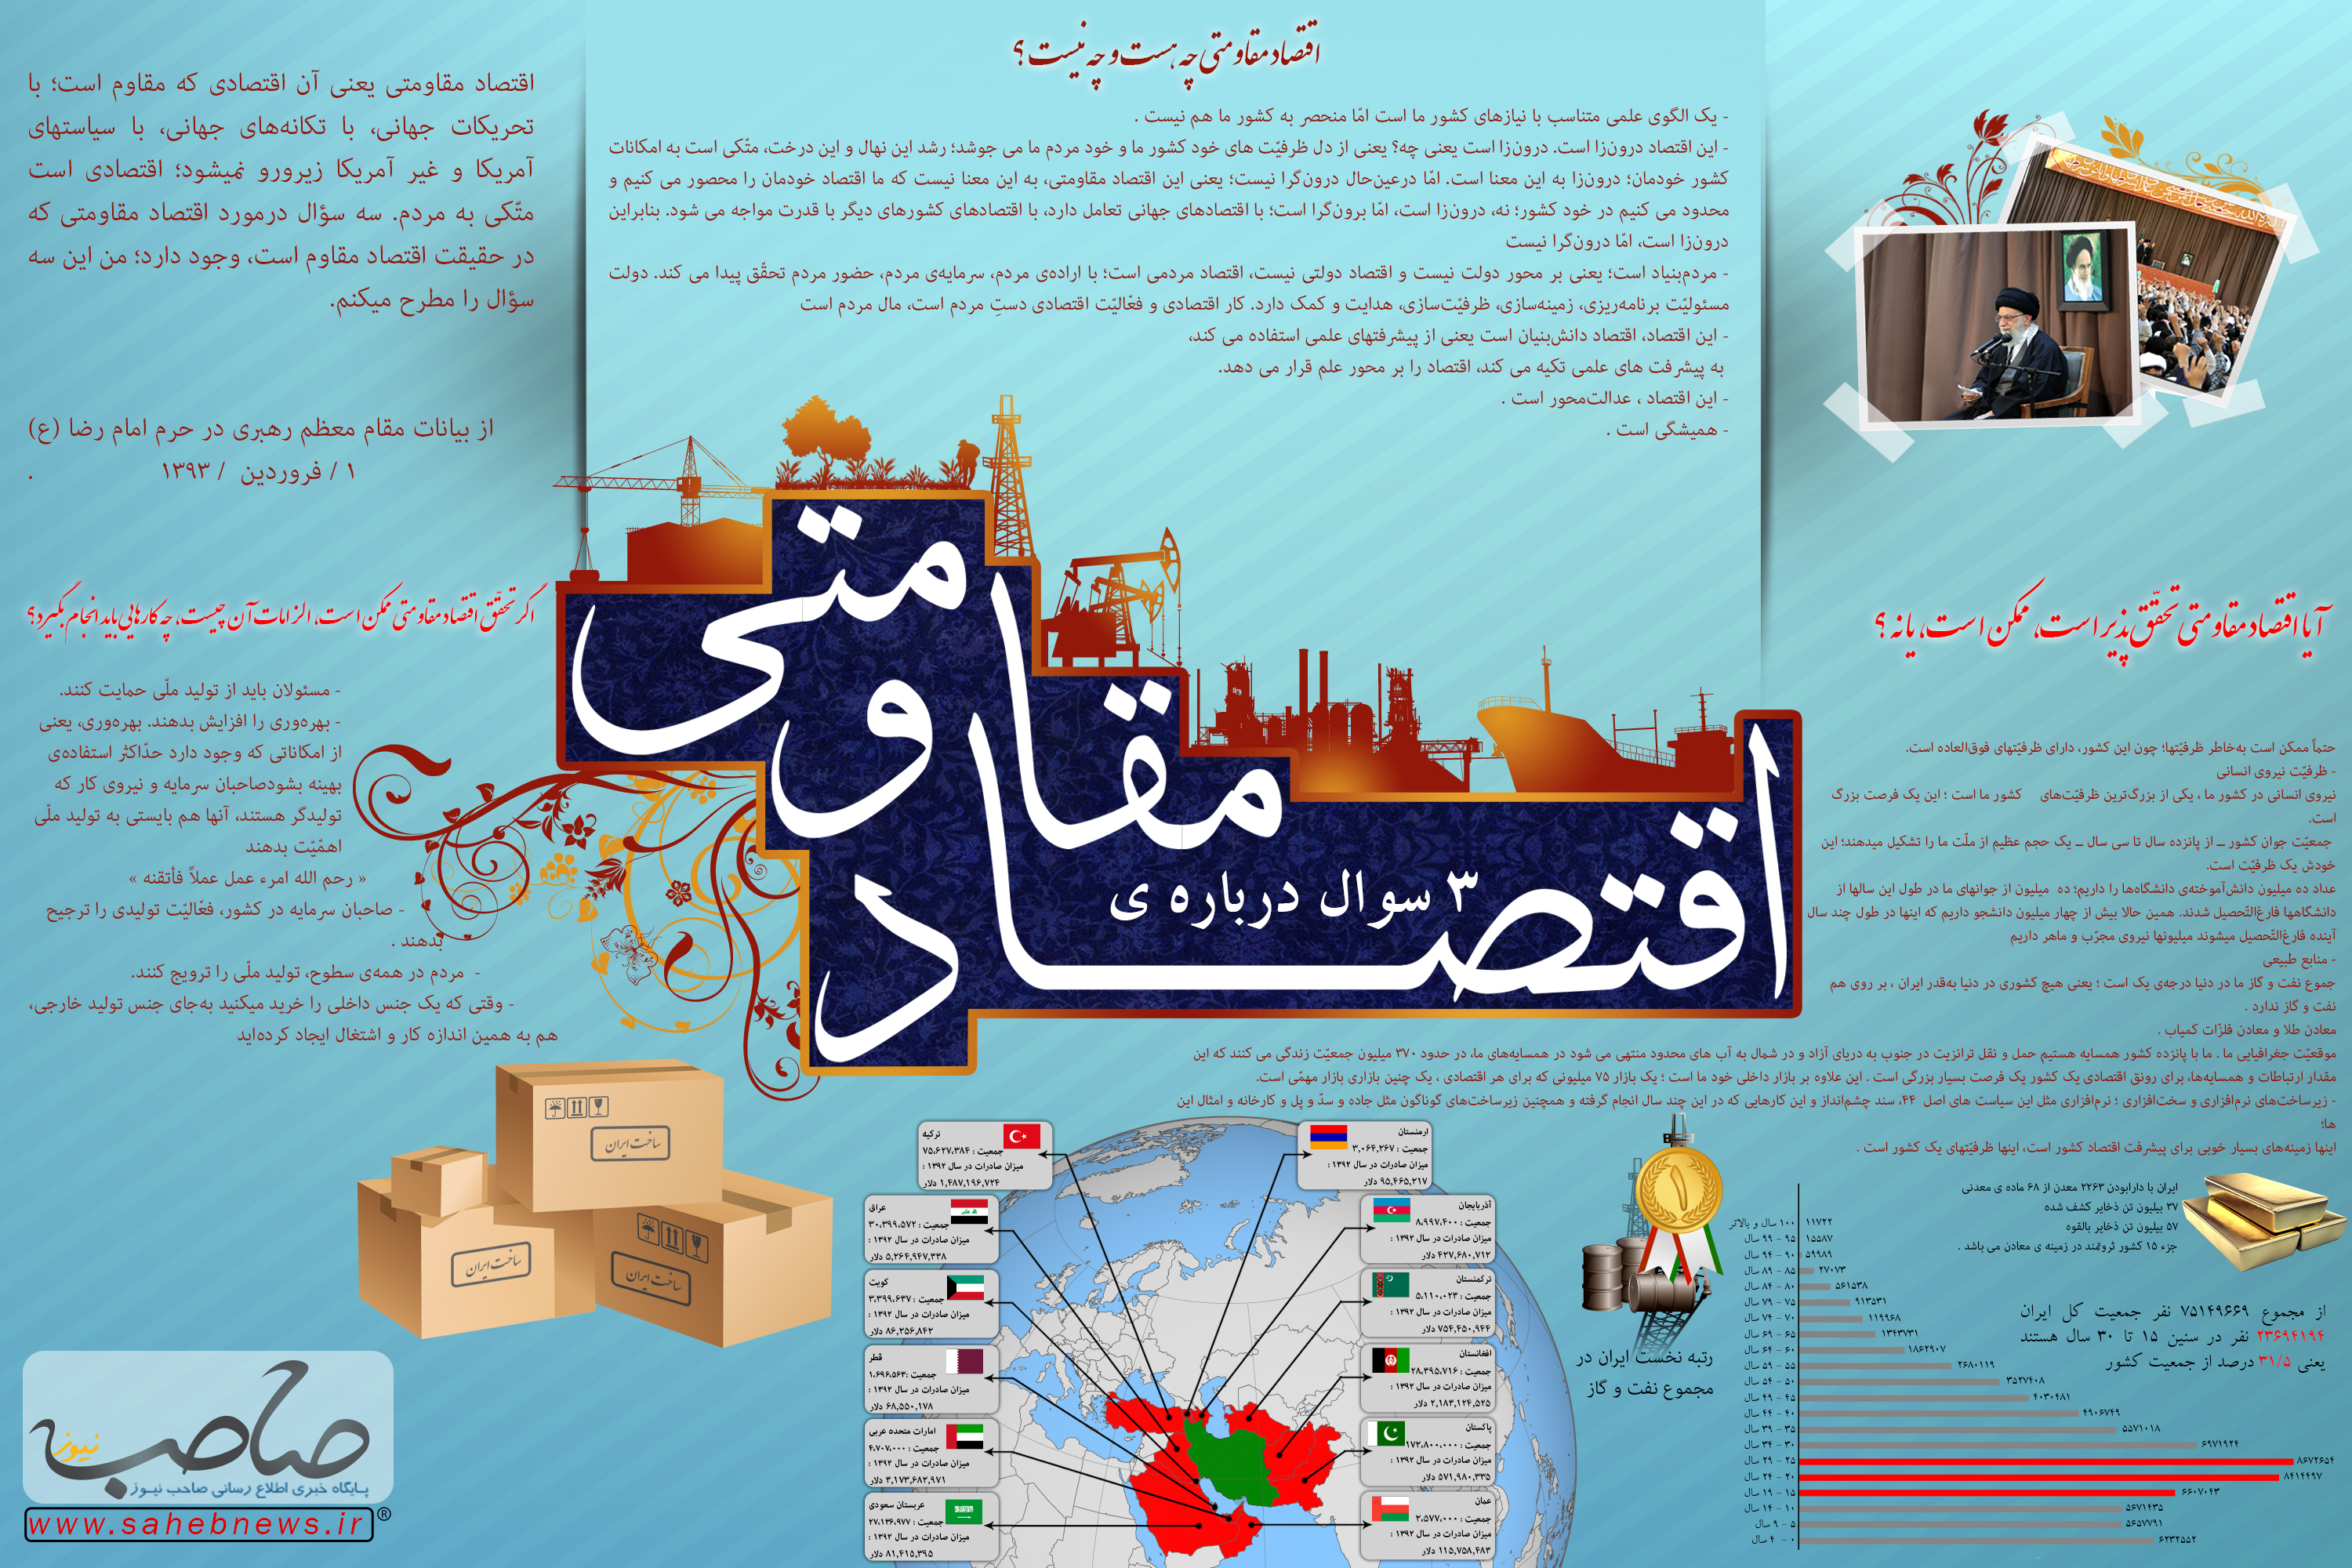 http://kowsarblog.ir/media/blogs/shamimevelayat/Economic-Strength.jpg